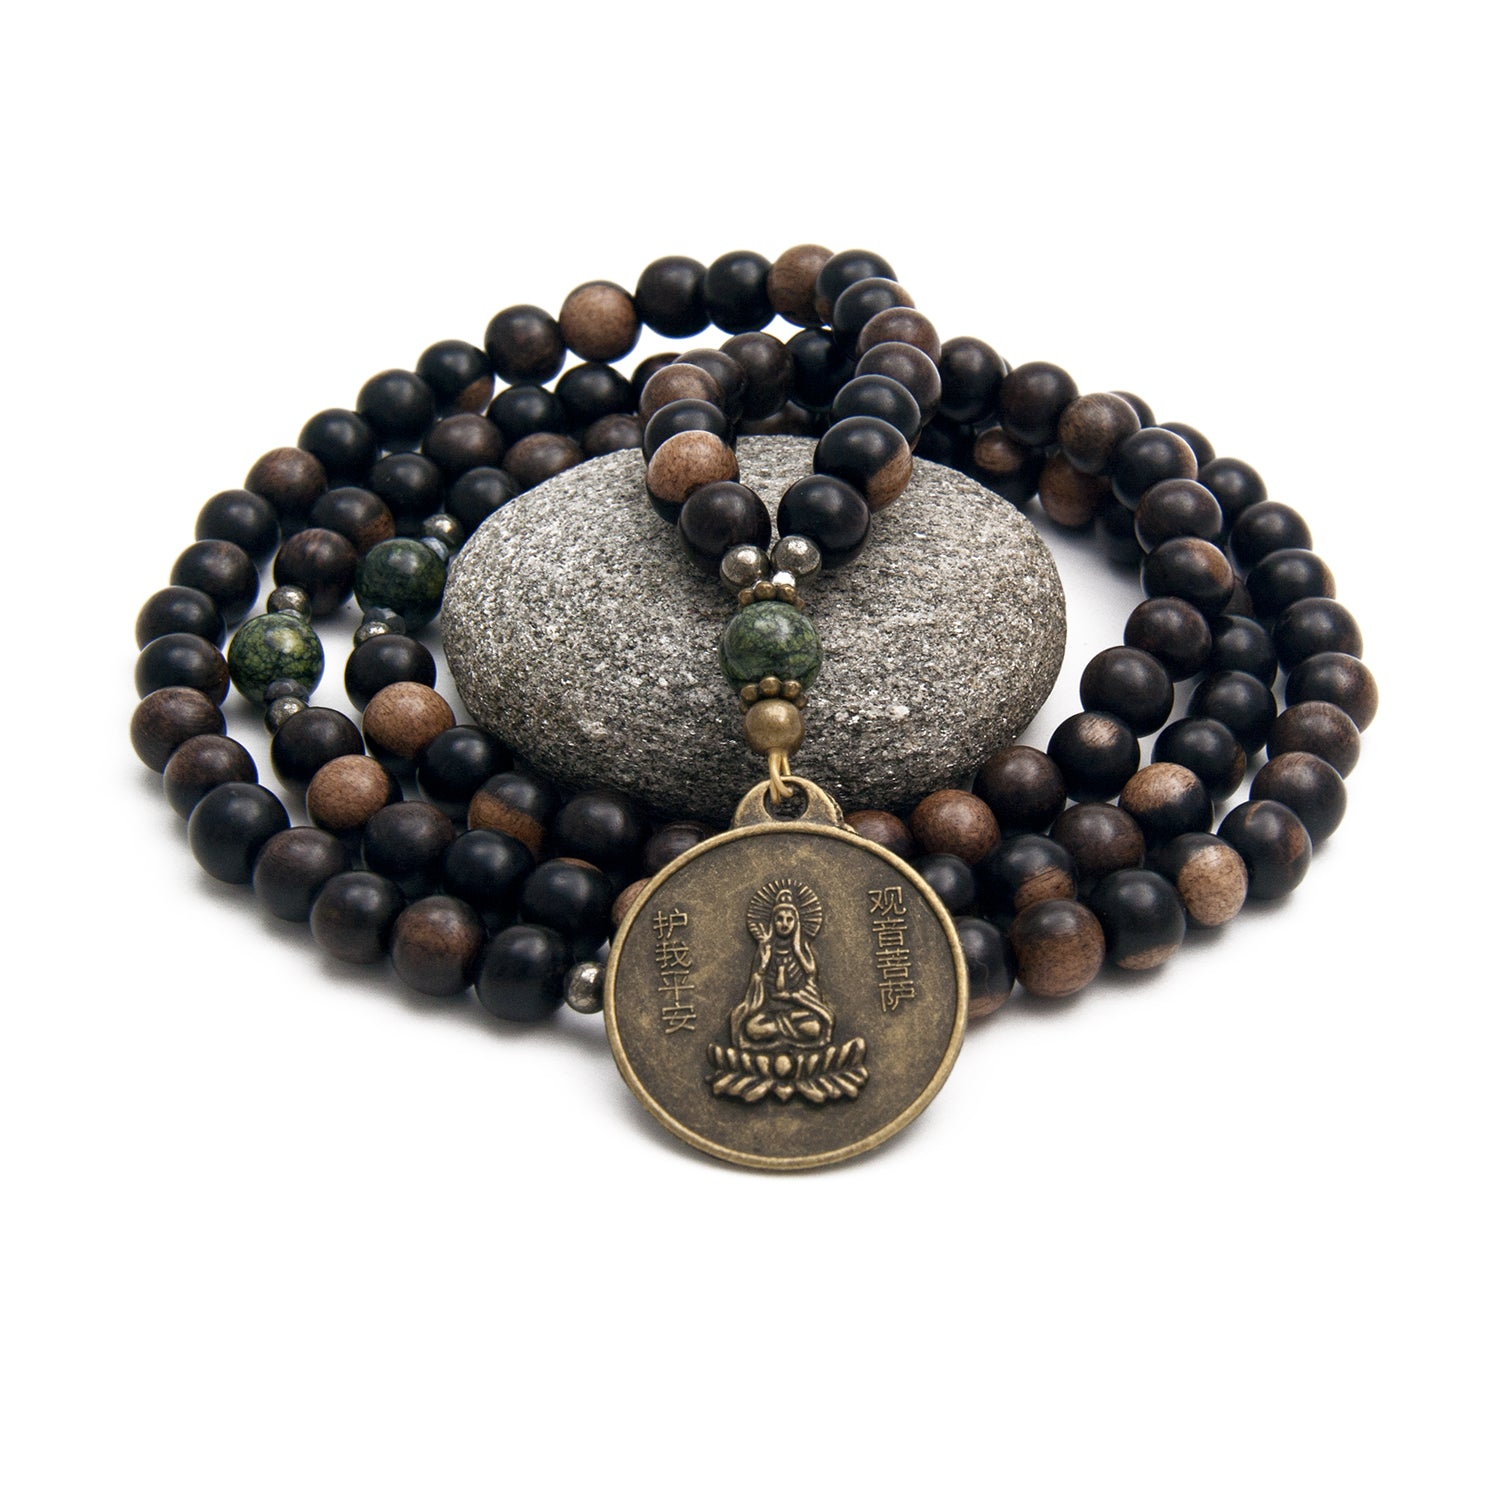 Guan Yin Mala Prayer Beads